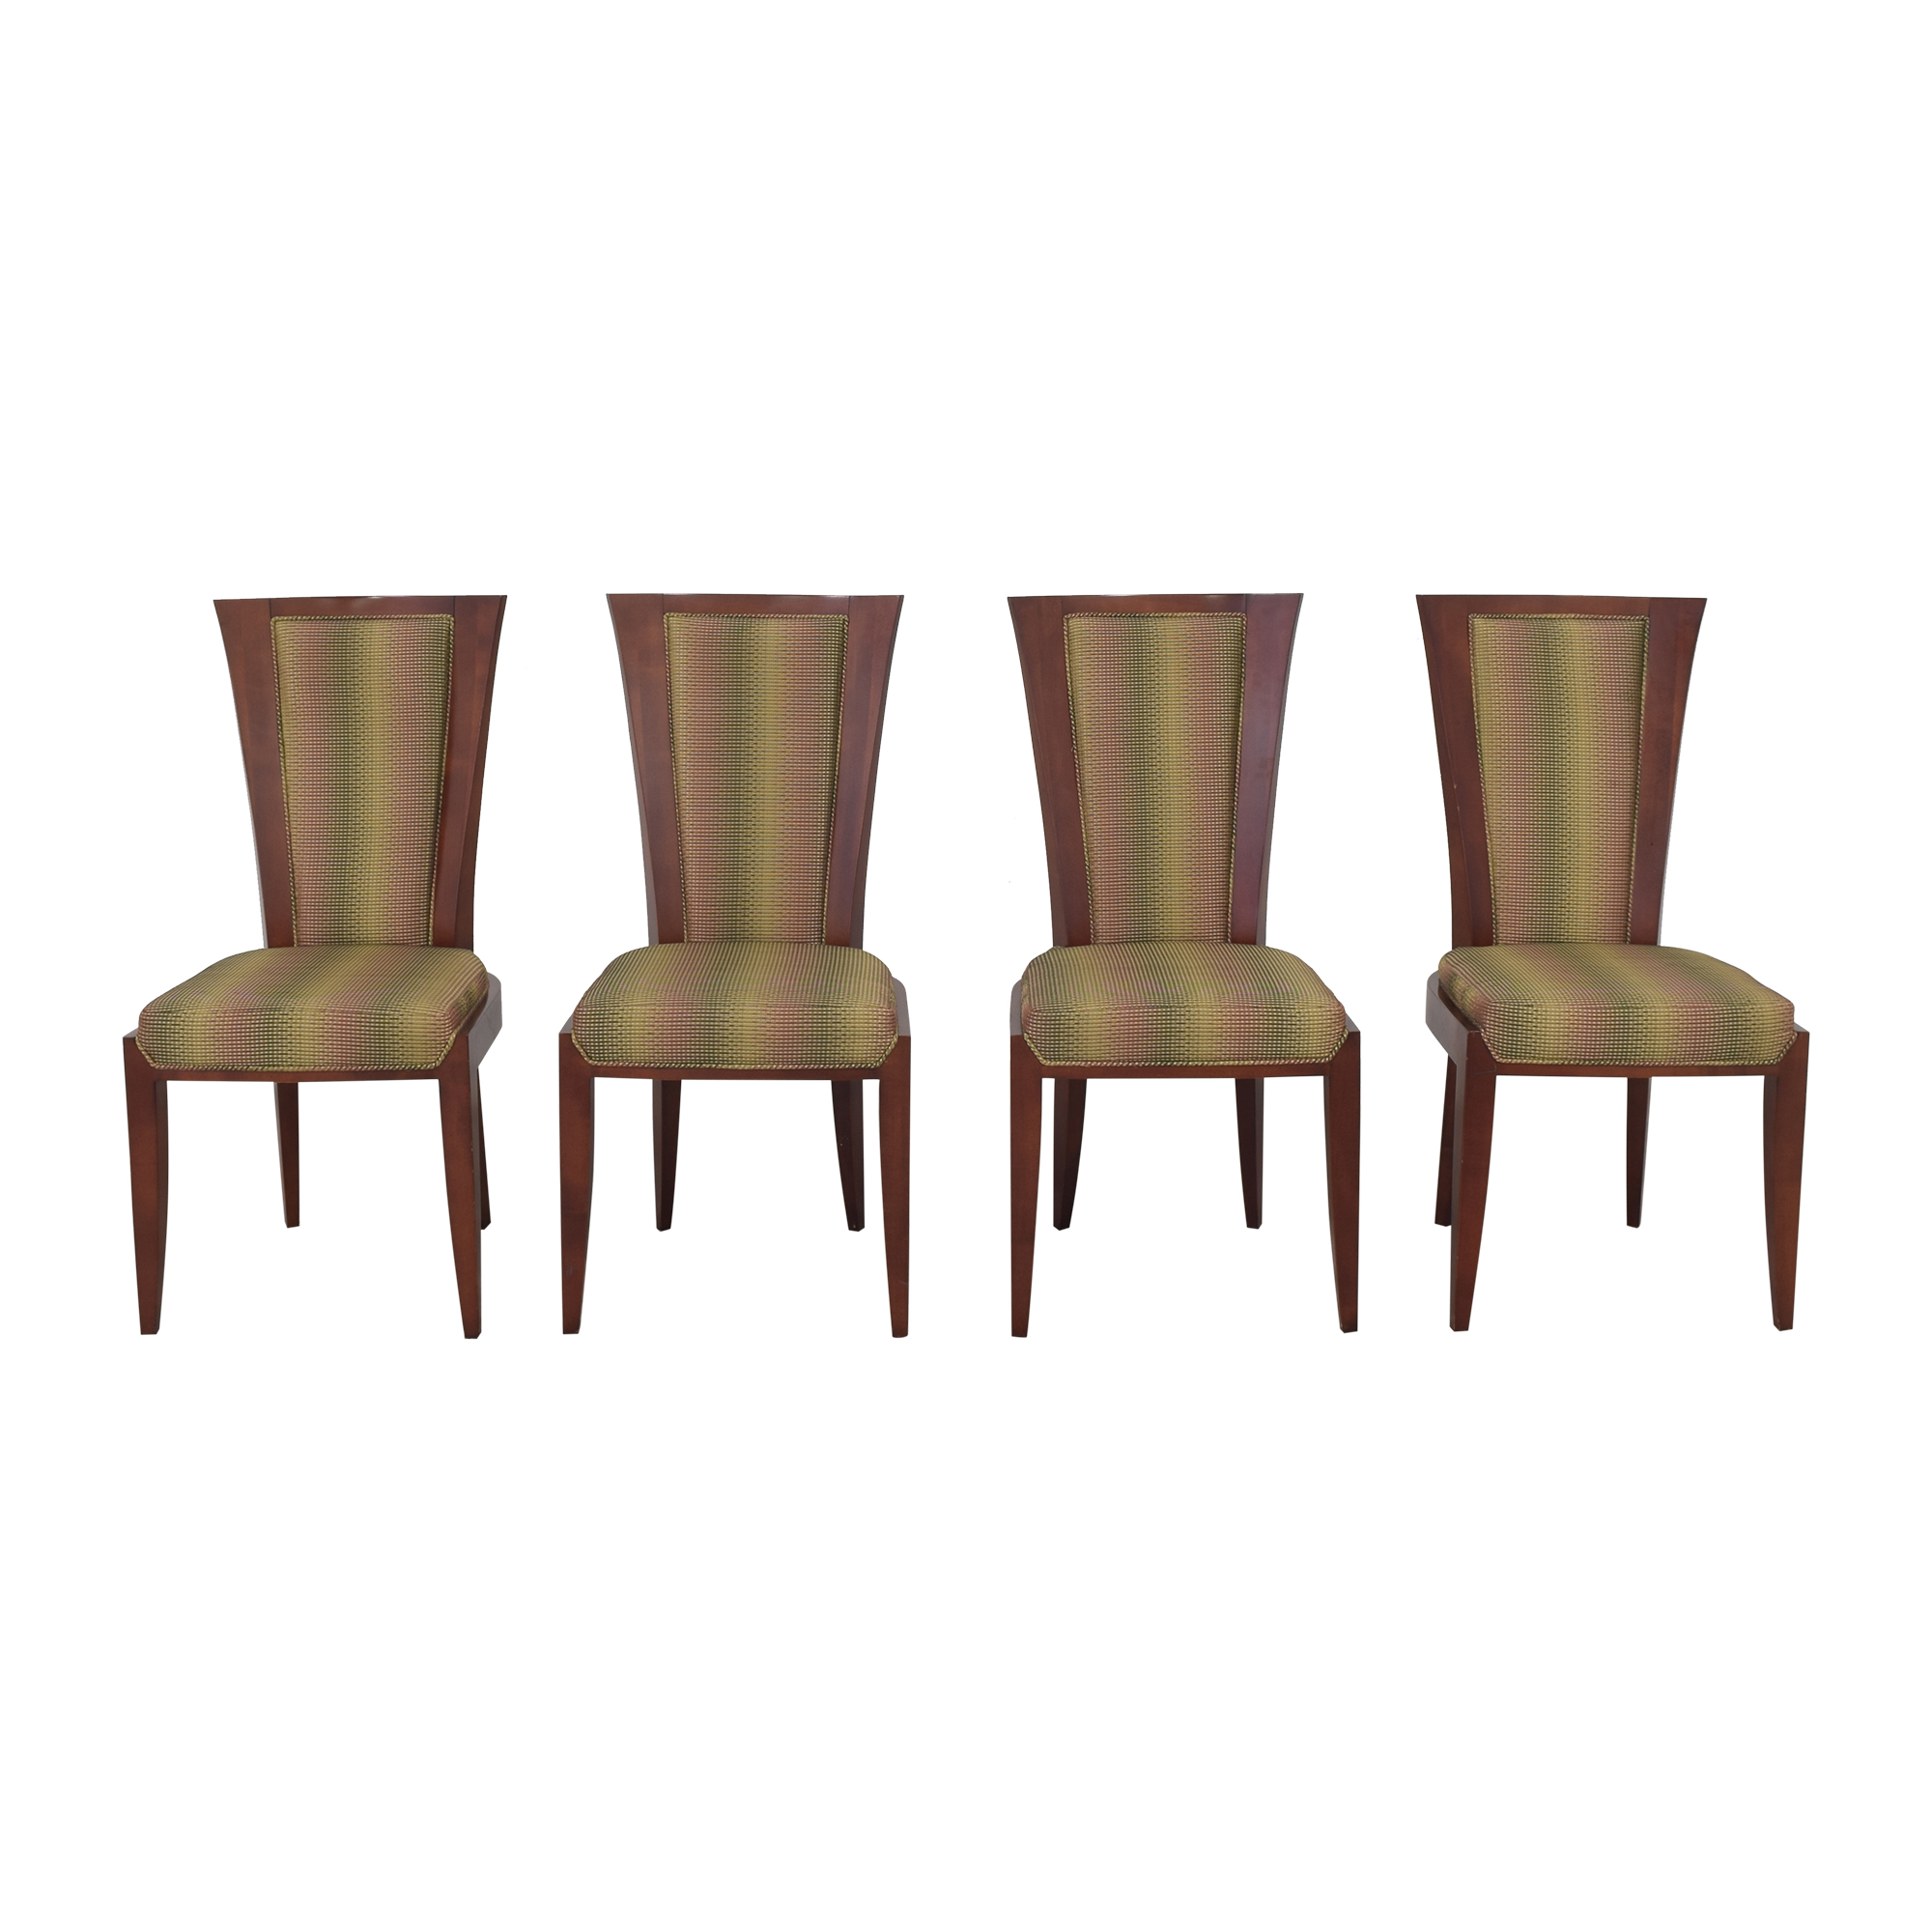 Upholstered Art Deco Dining Chairs ma